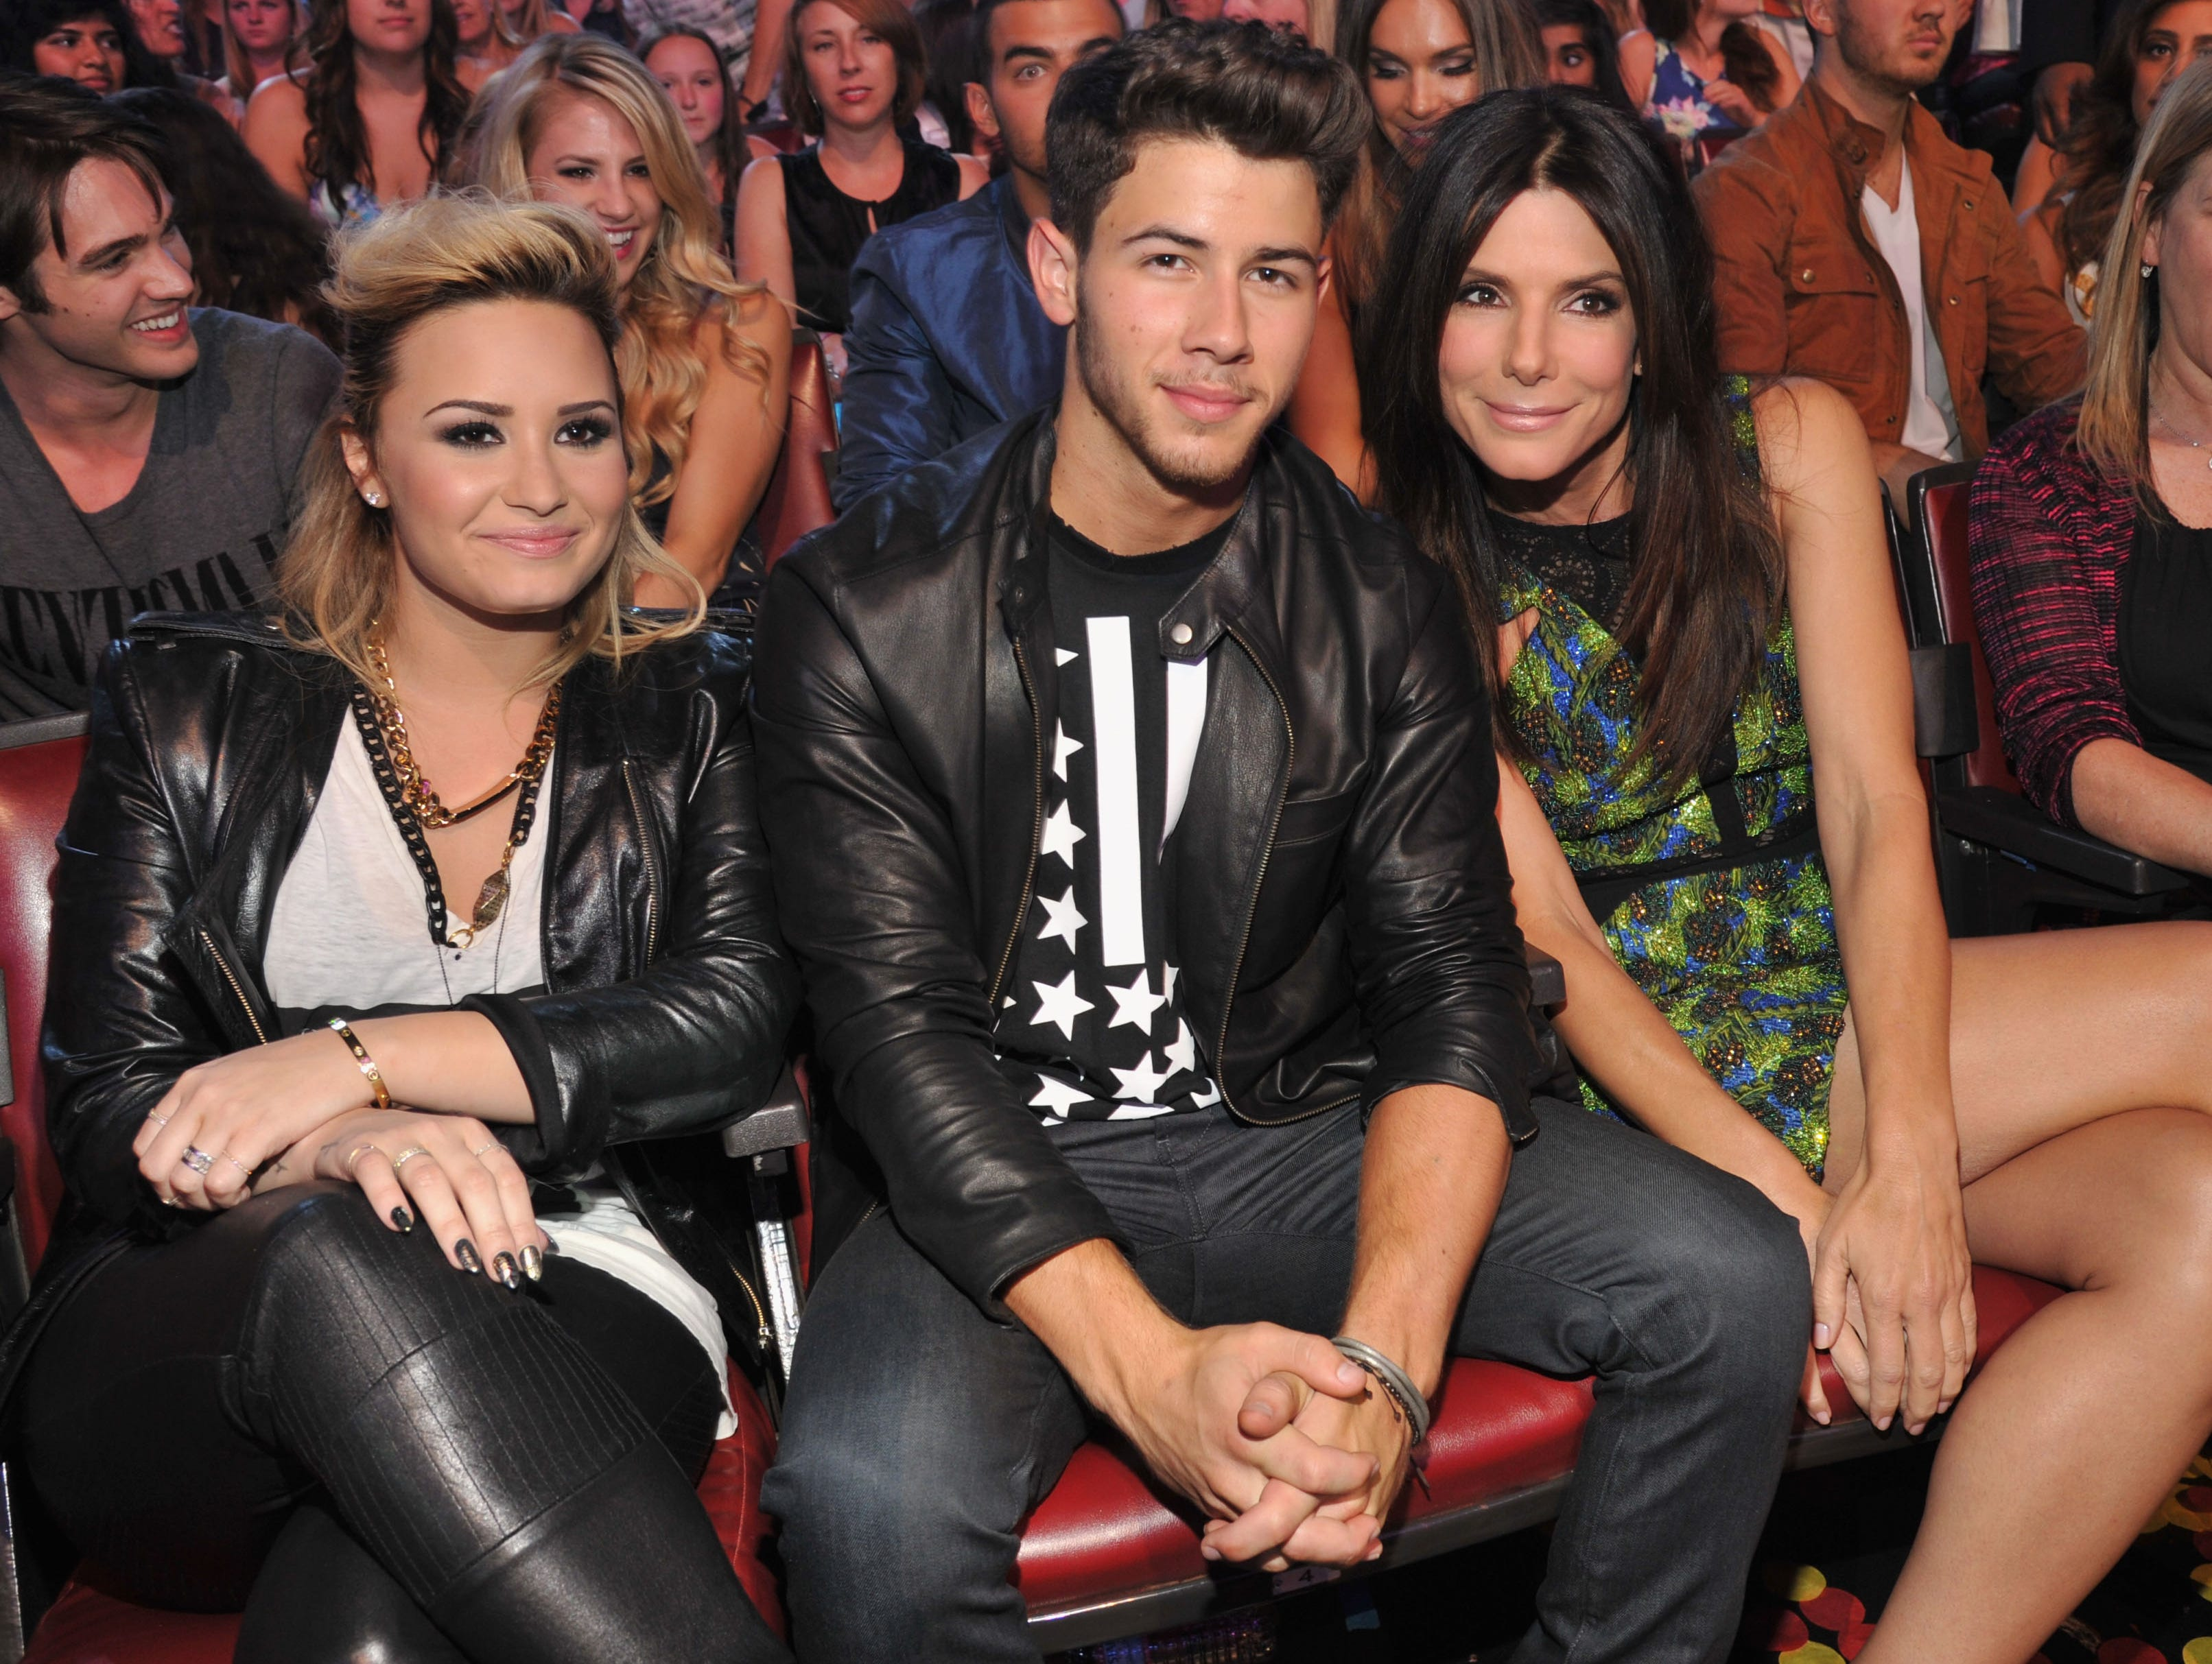 Musicians Demi Lovato, Nick Jonas, and actress Sandra Bullock  enjoy the show.